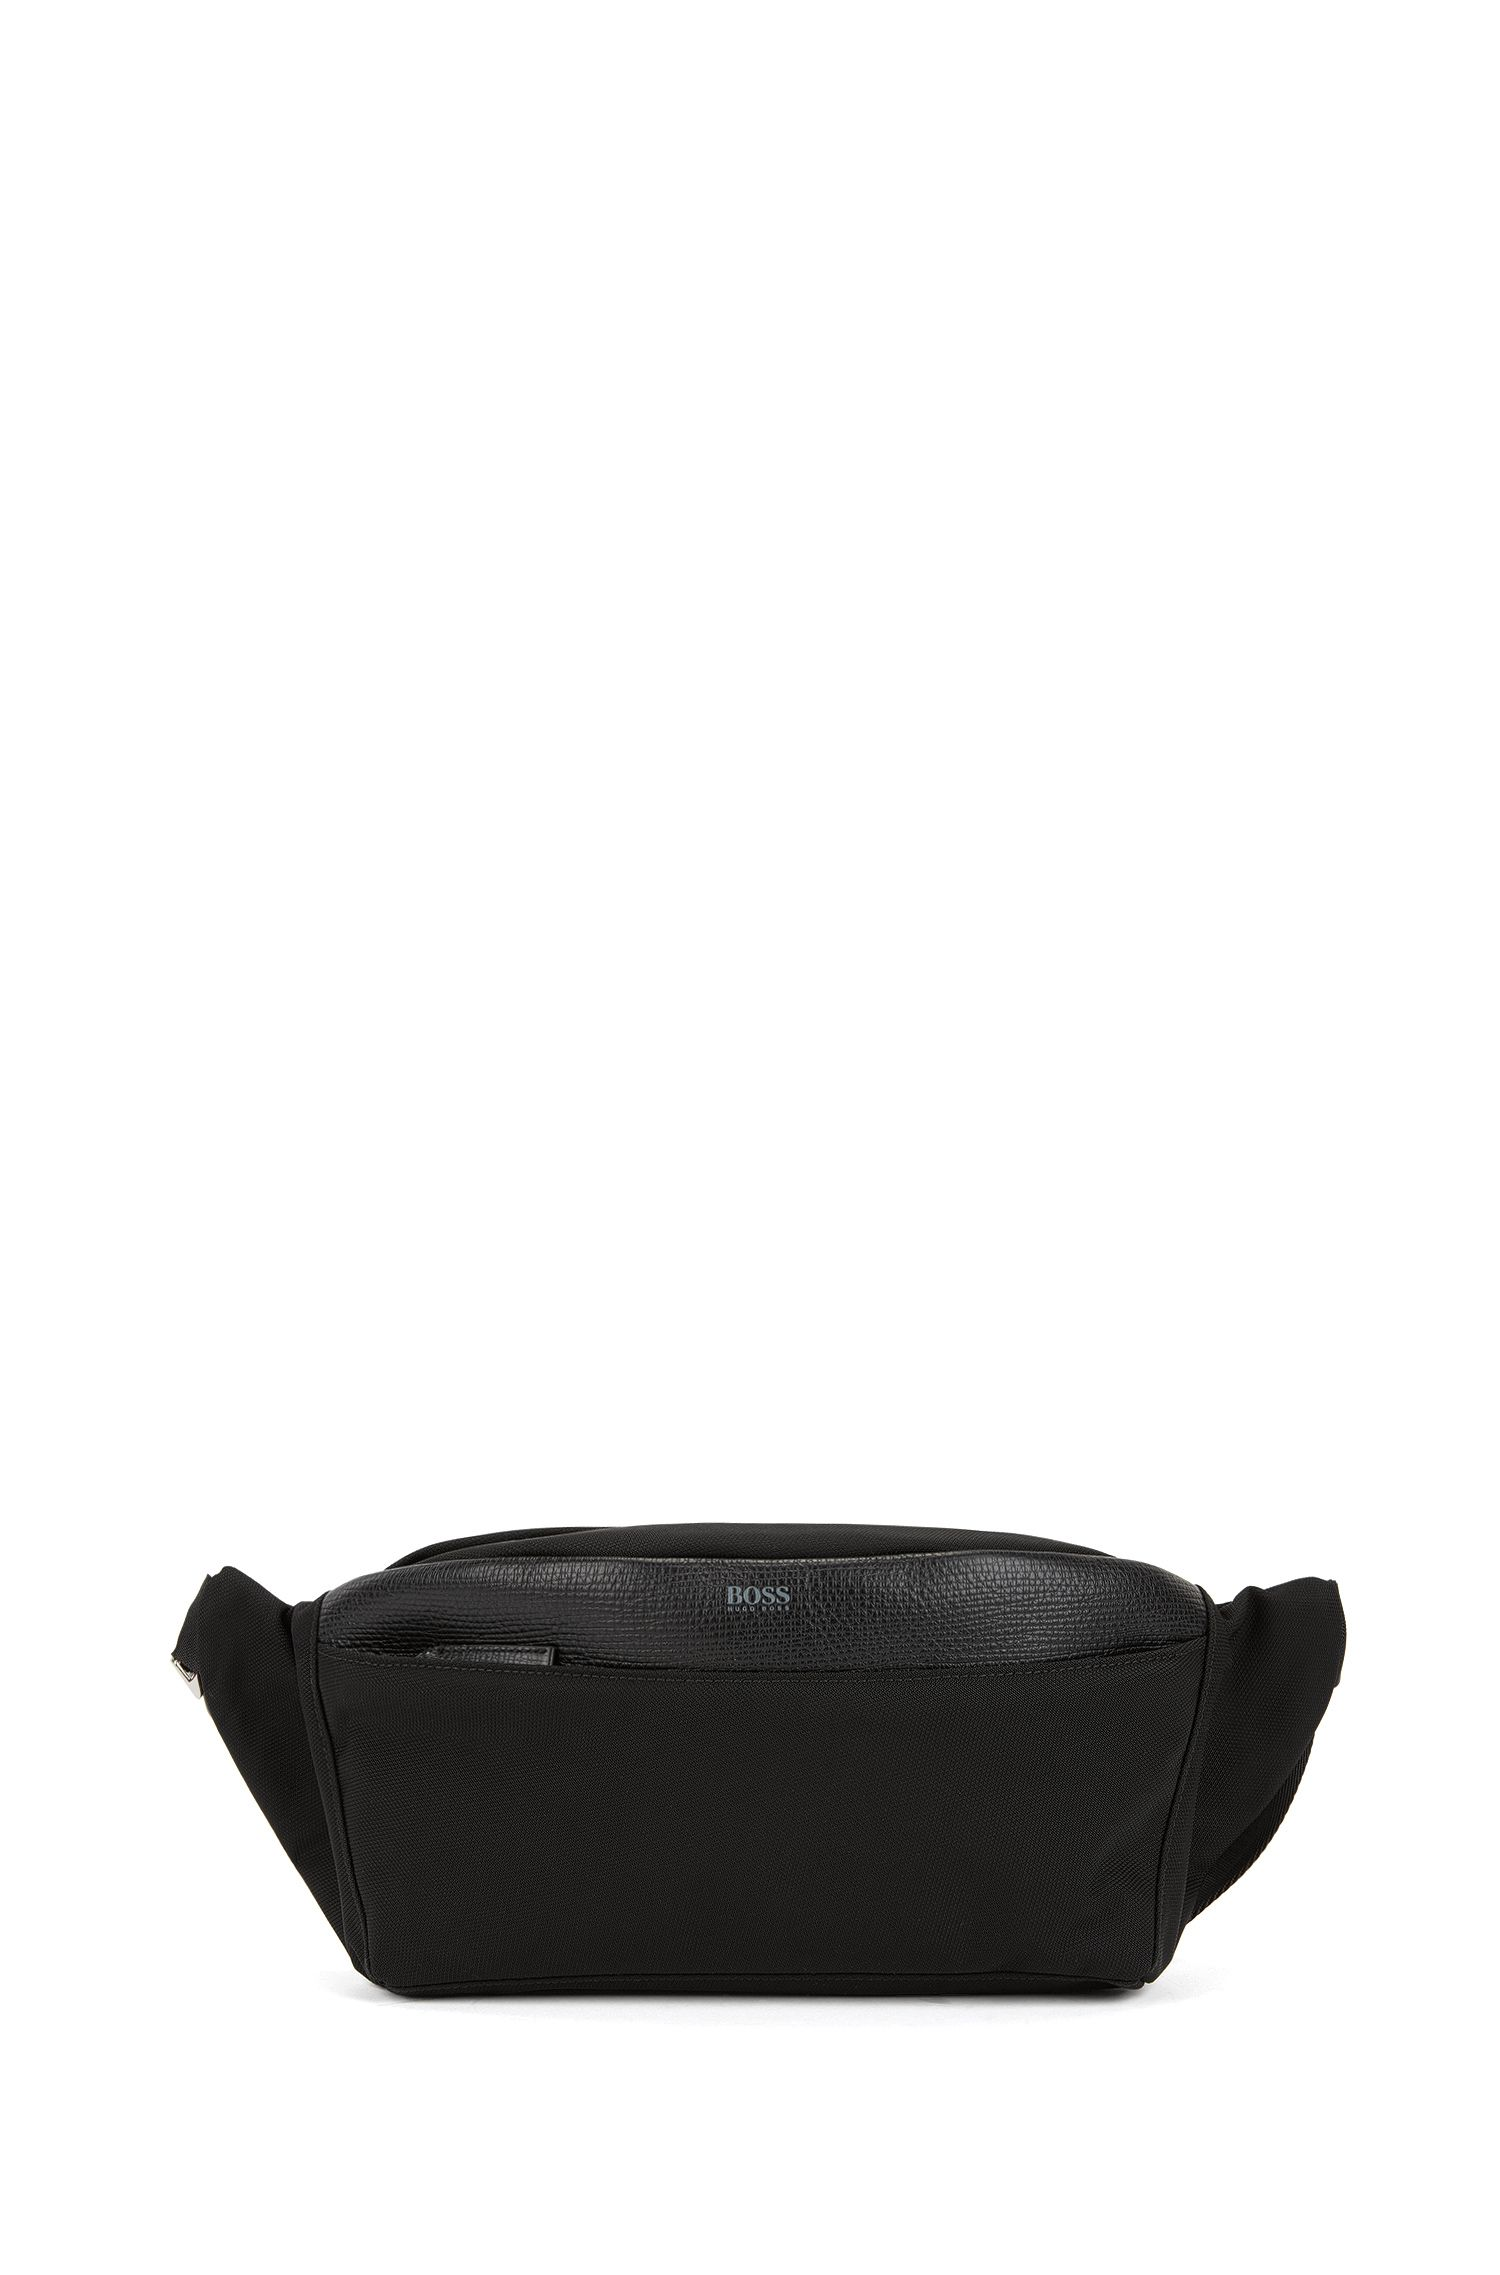 Bumbag in structured nylon with Italian-calf-leather trims